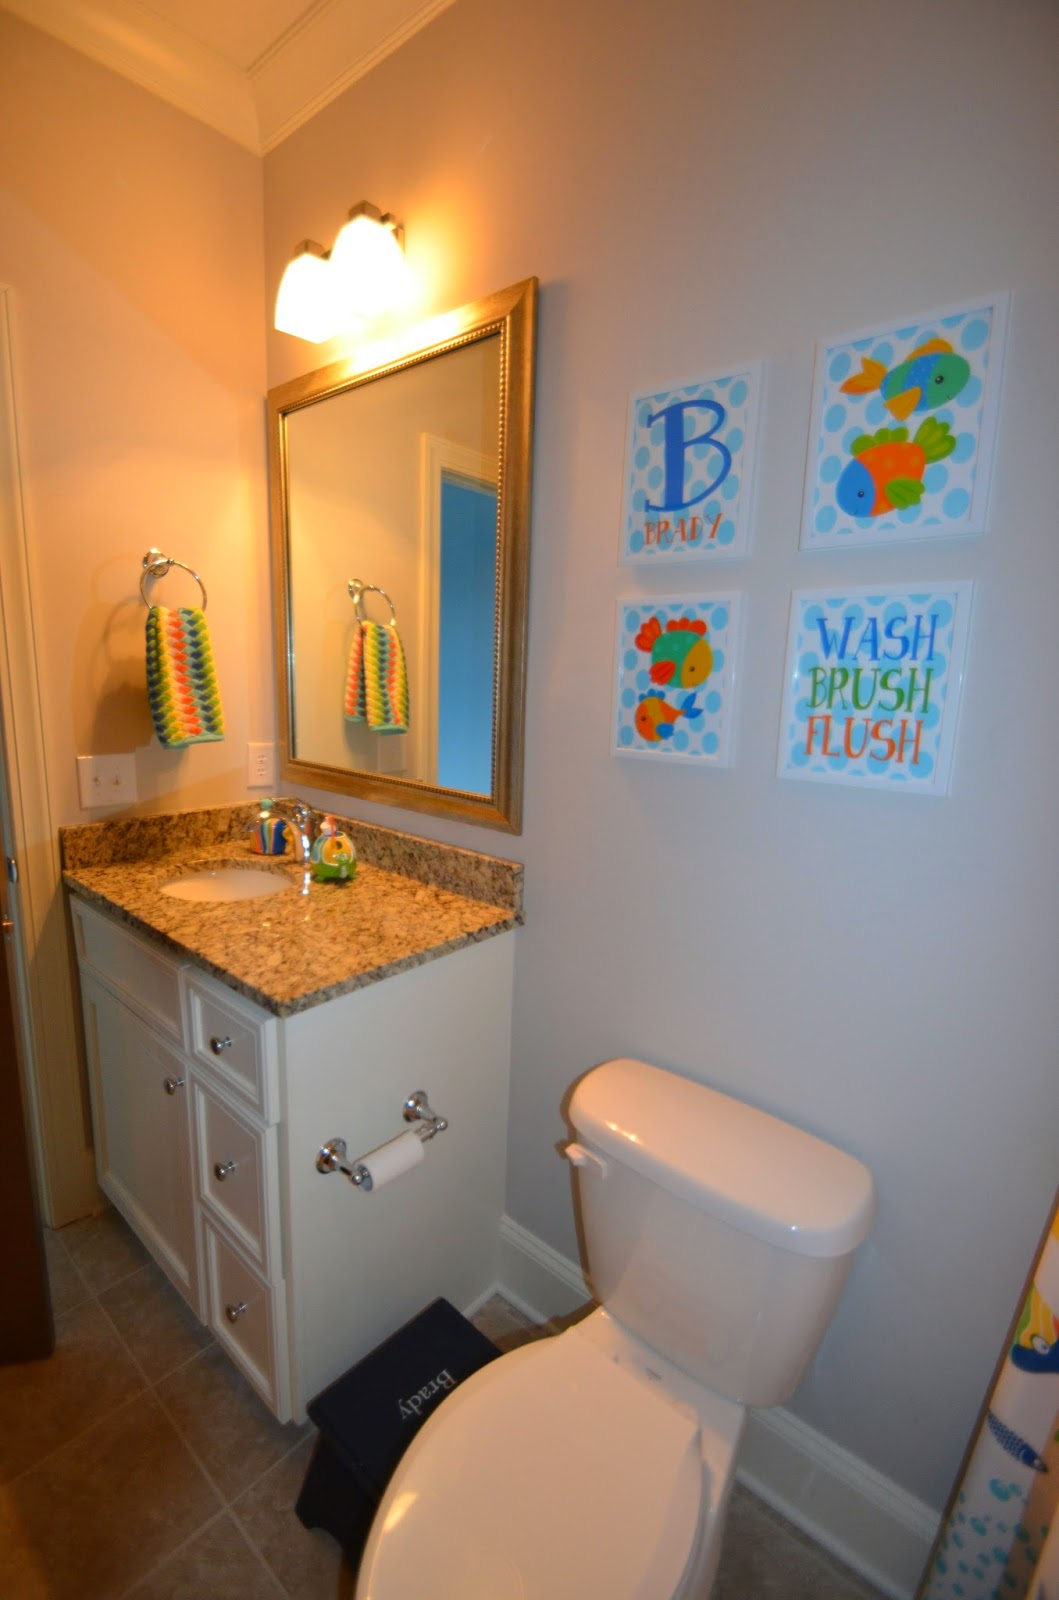 The Life Of Riley Home Tour Brady S Room And Bathroom